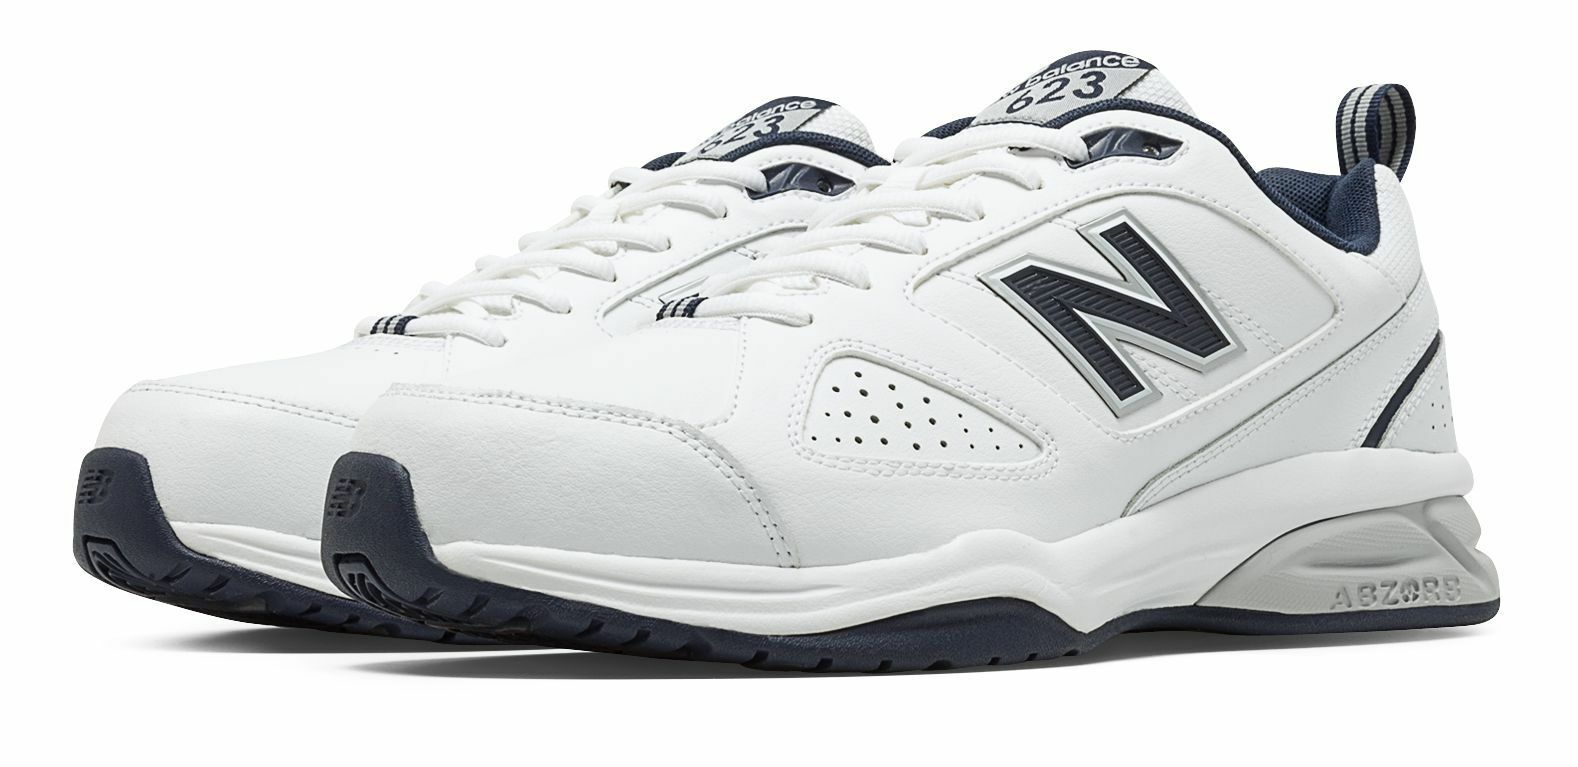 New Balance hommes 623v3 Trainer Chaussures blanc with Navy